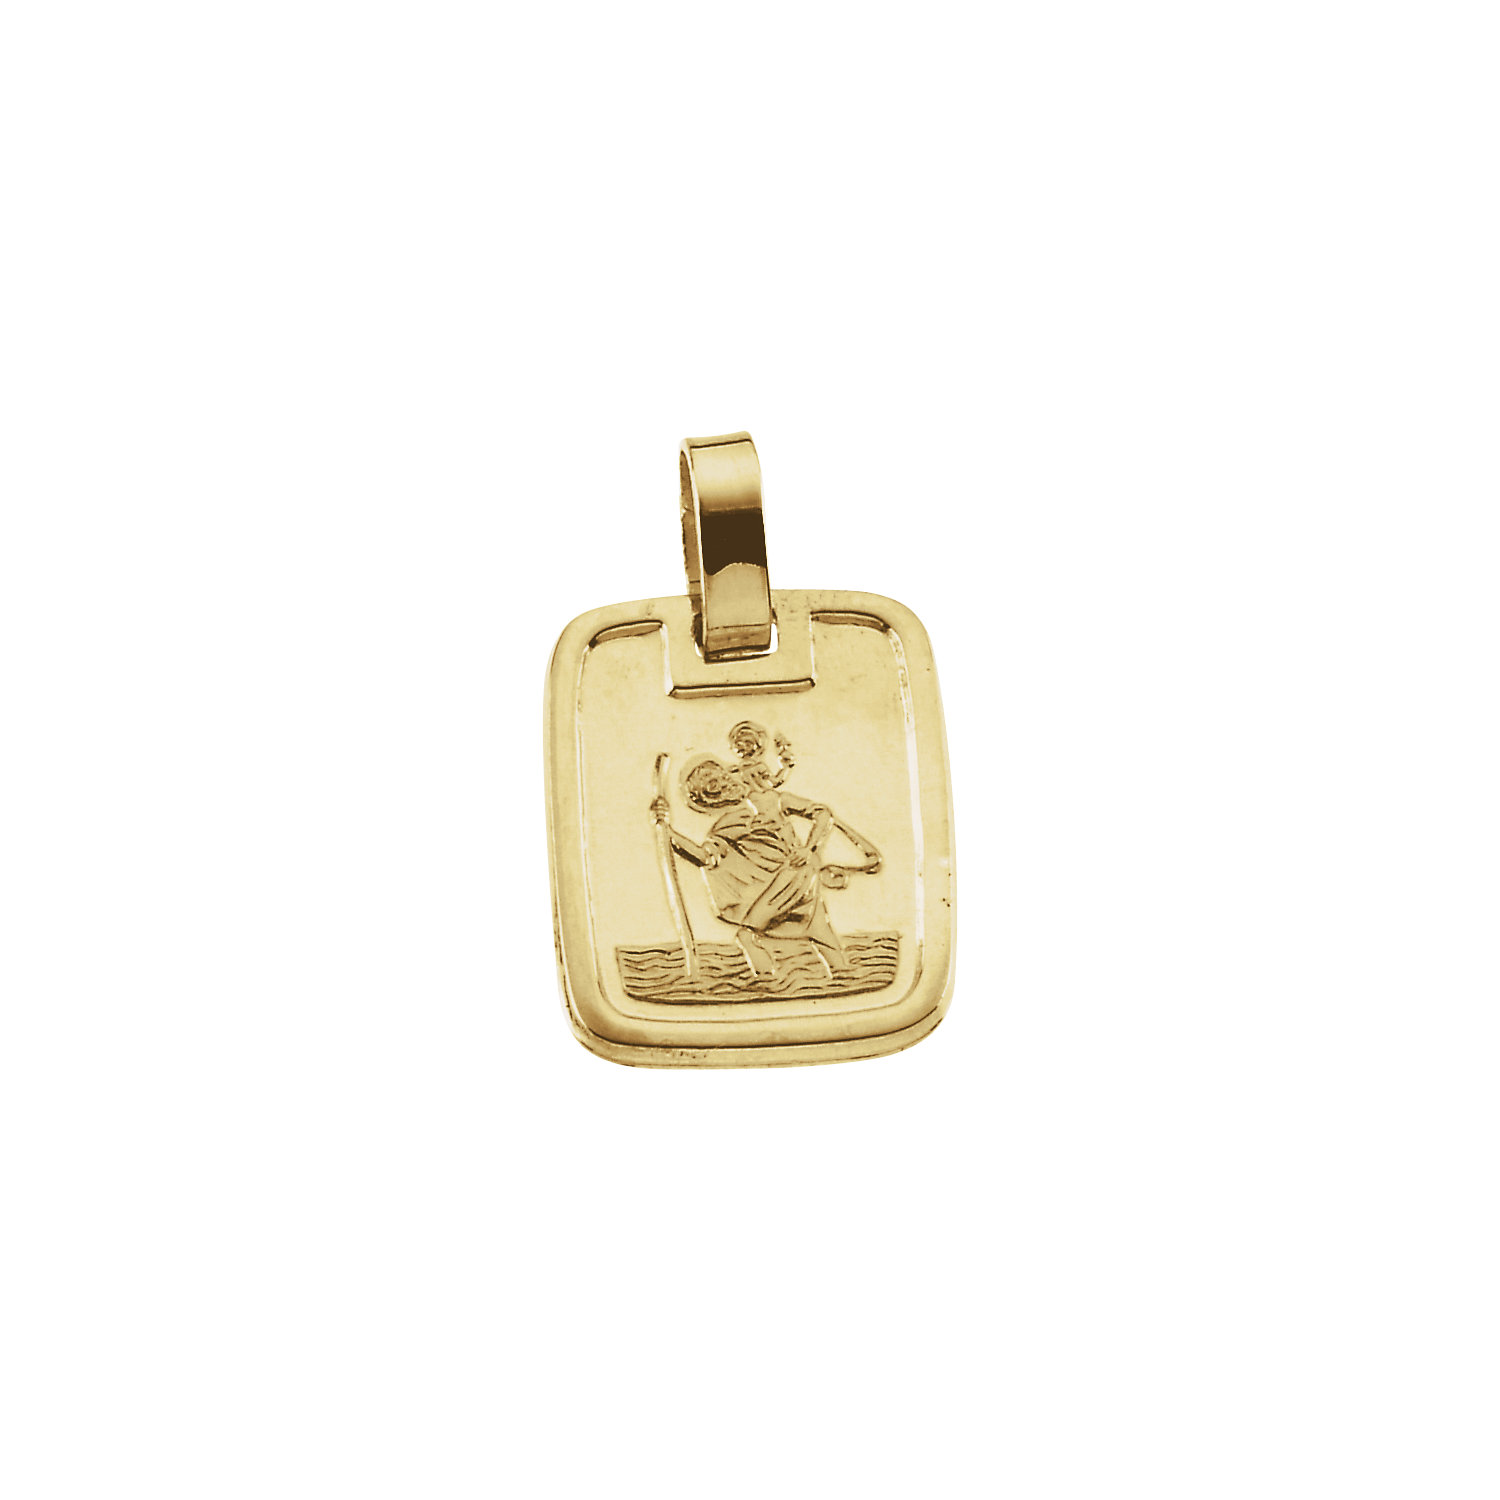 14K Yellow St. Christopher Rectangular-Shaped Medal, 13.1x11.2 mm